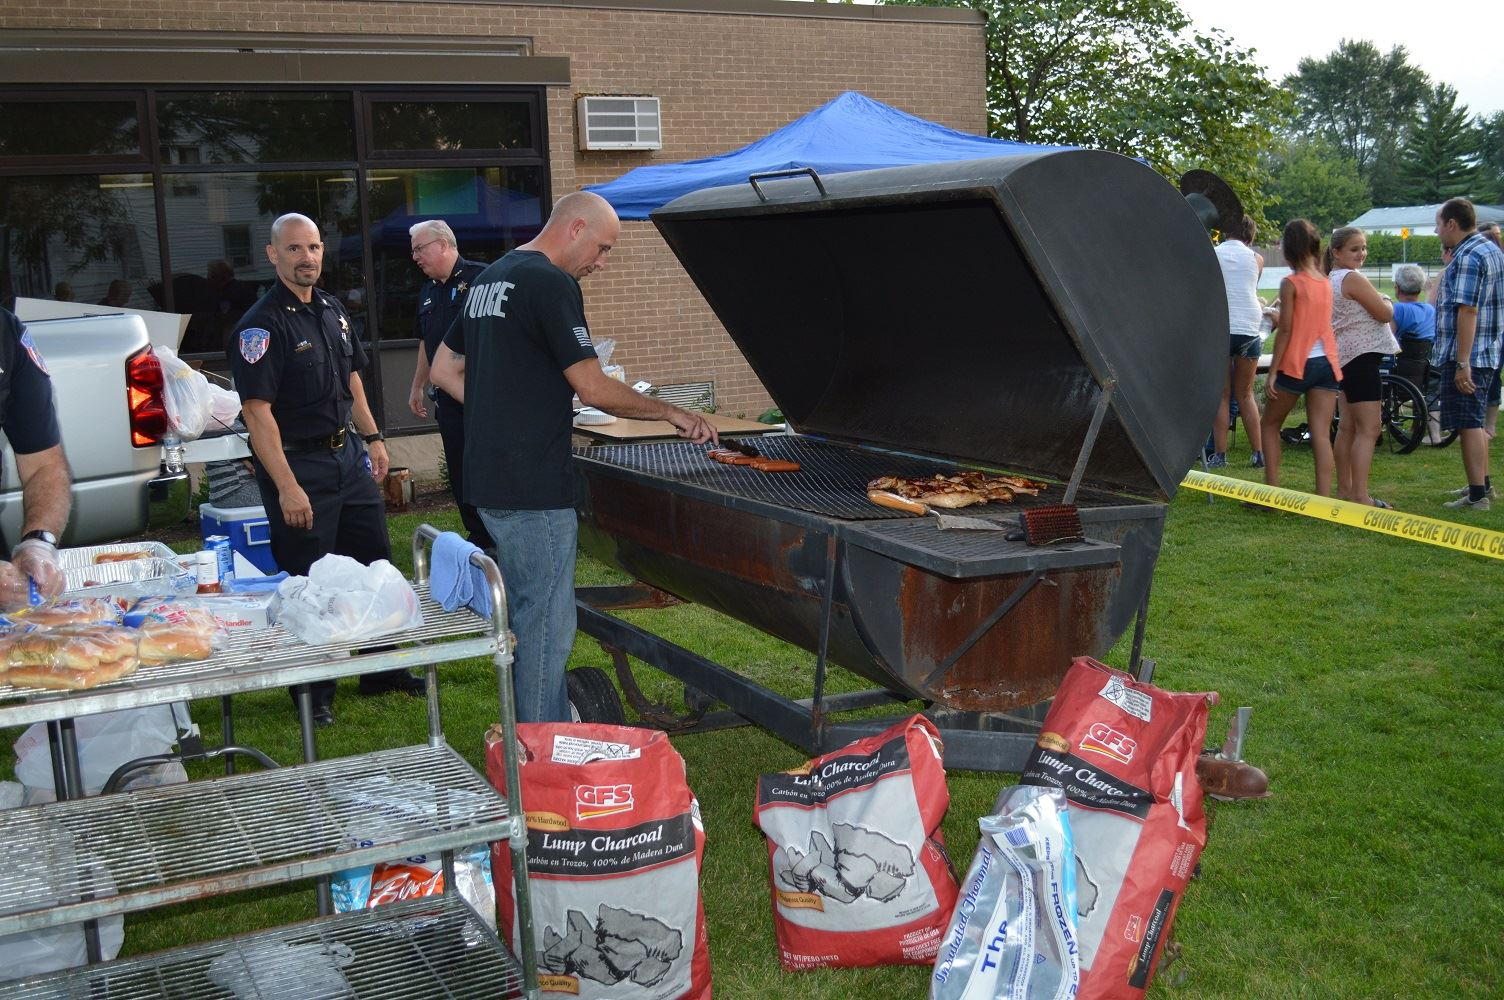 Villa Park Detective Hruby grills up food for community members at a National Night Out event at the Iowa Community Center, Aug. 2.